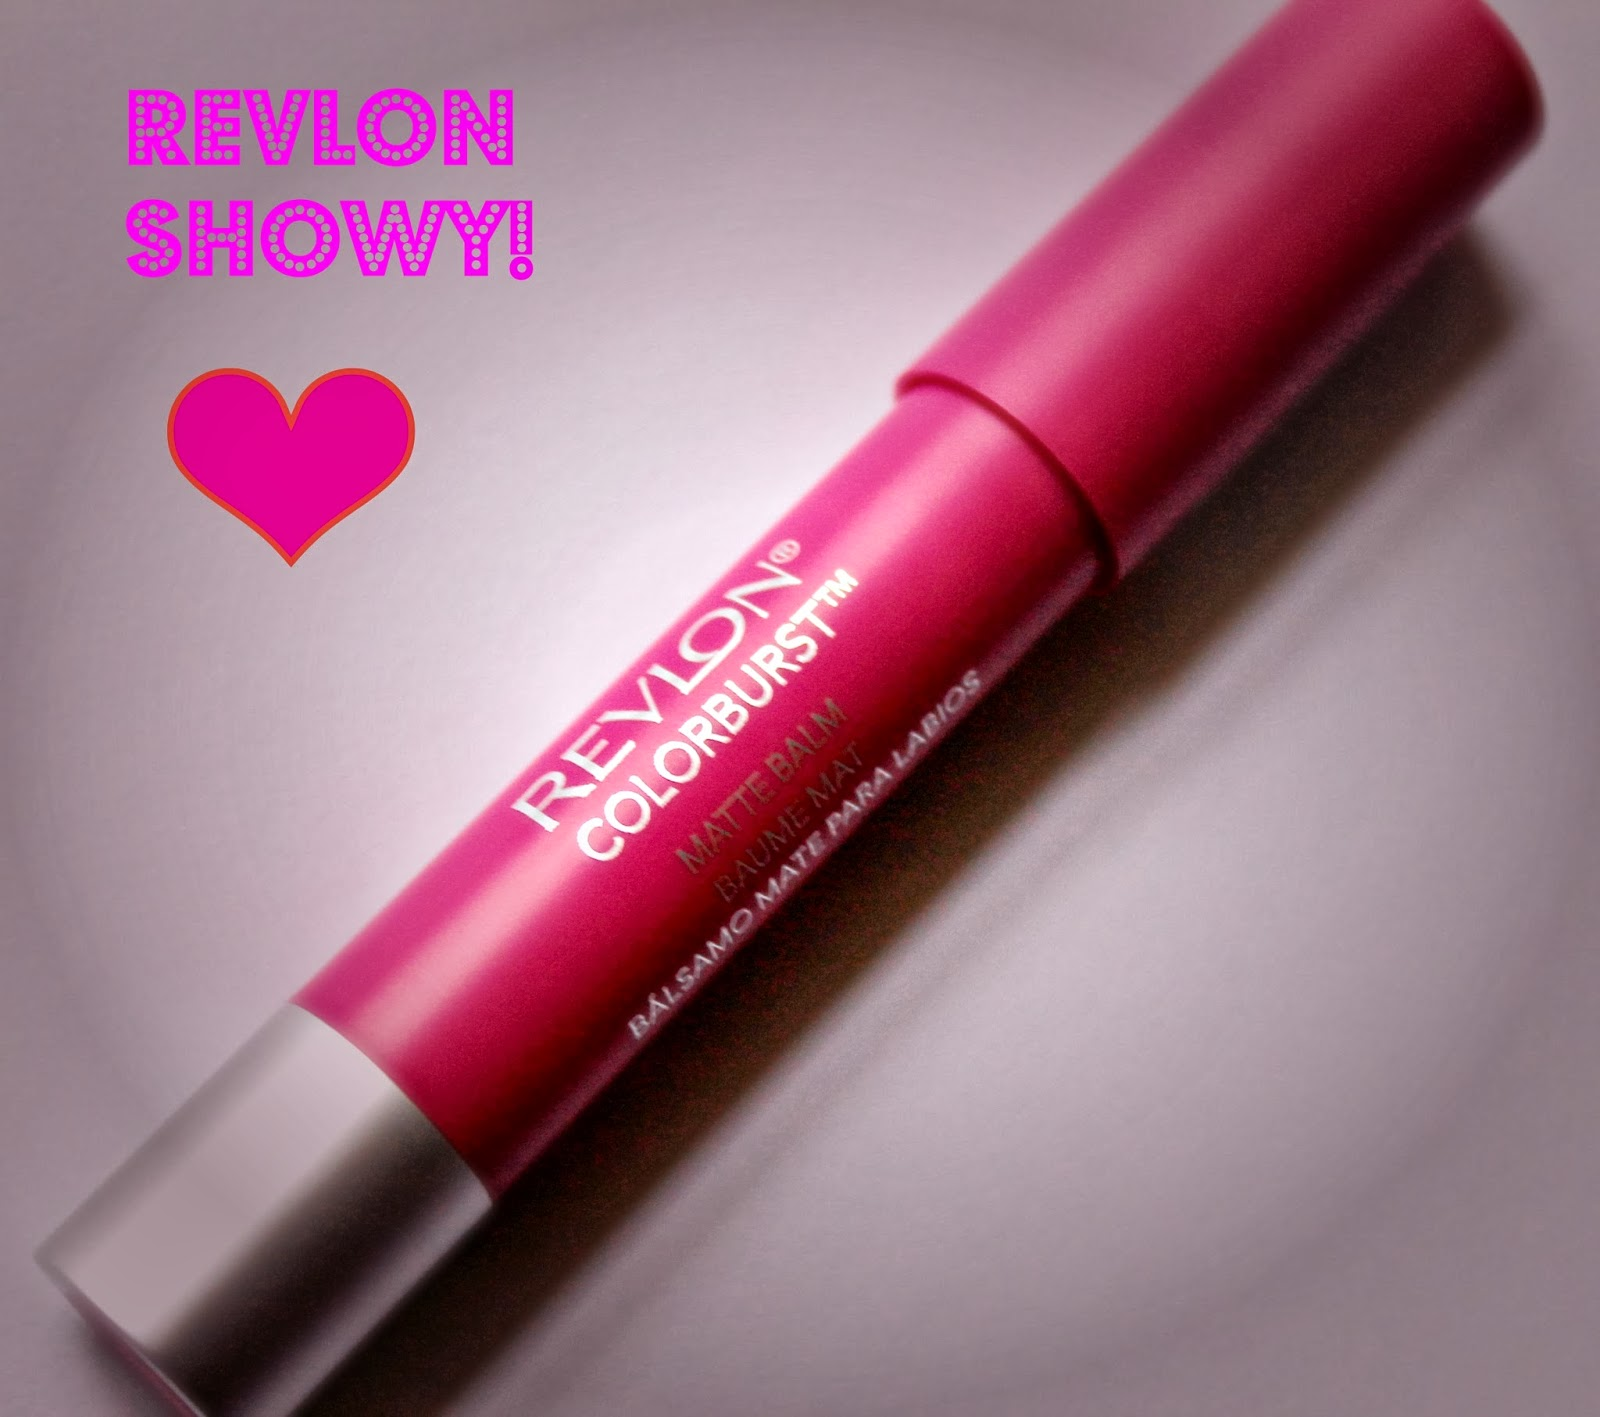 Revlon ColorBurst matte Balm Showy